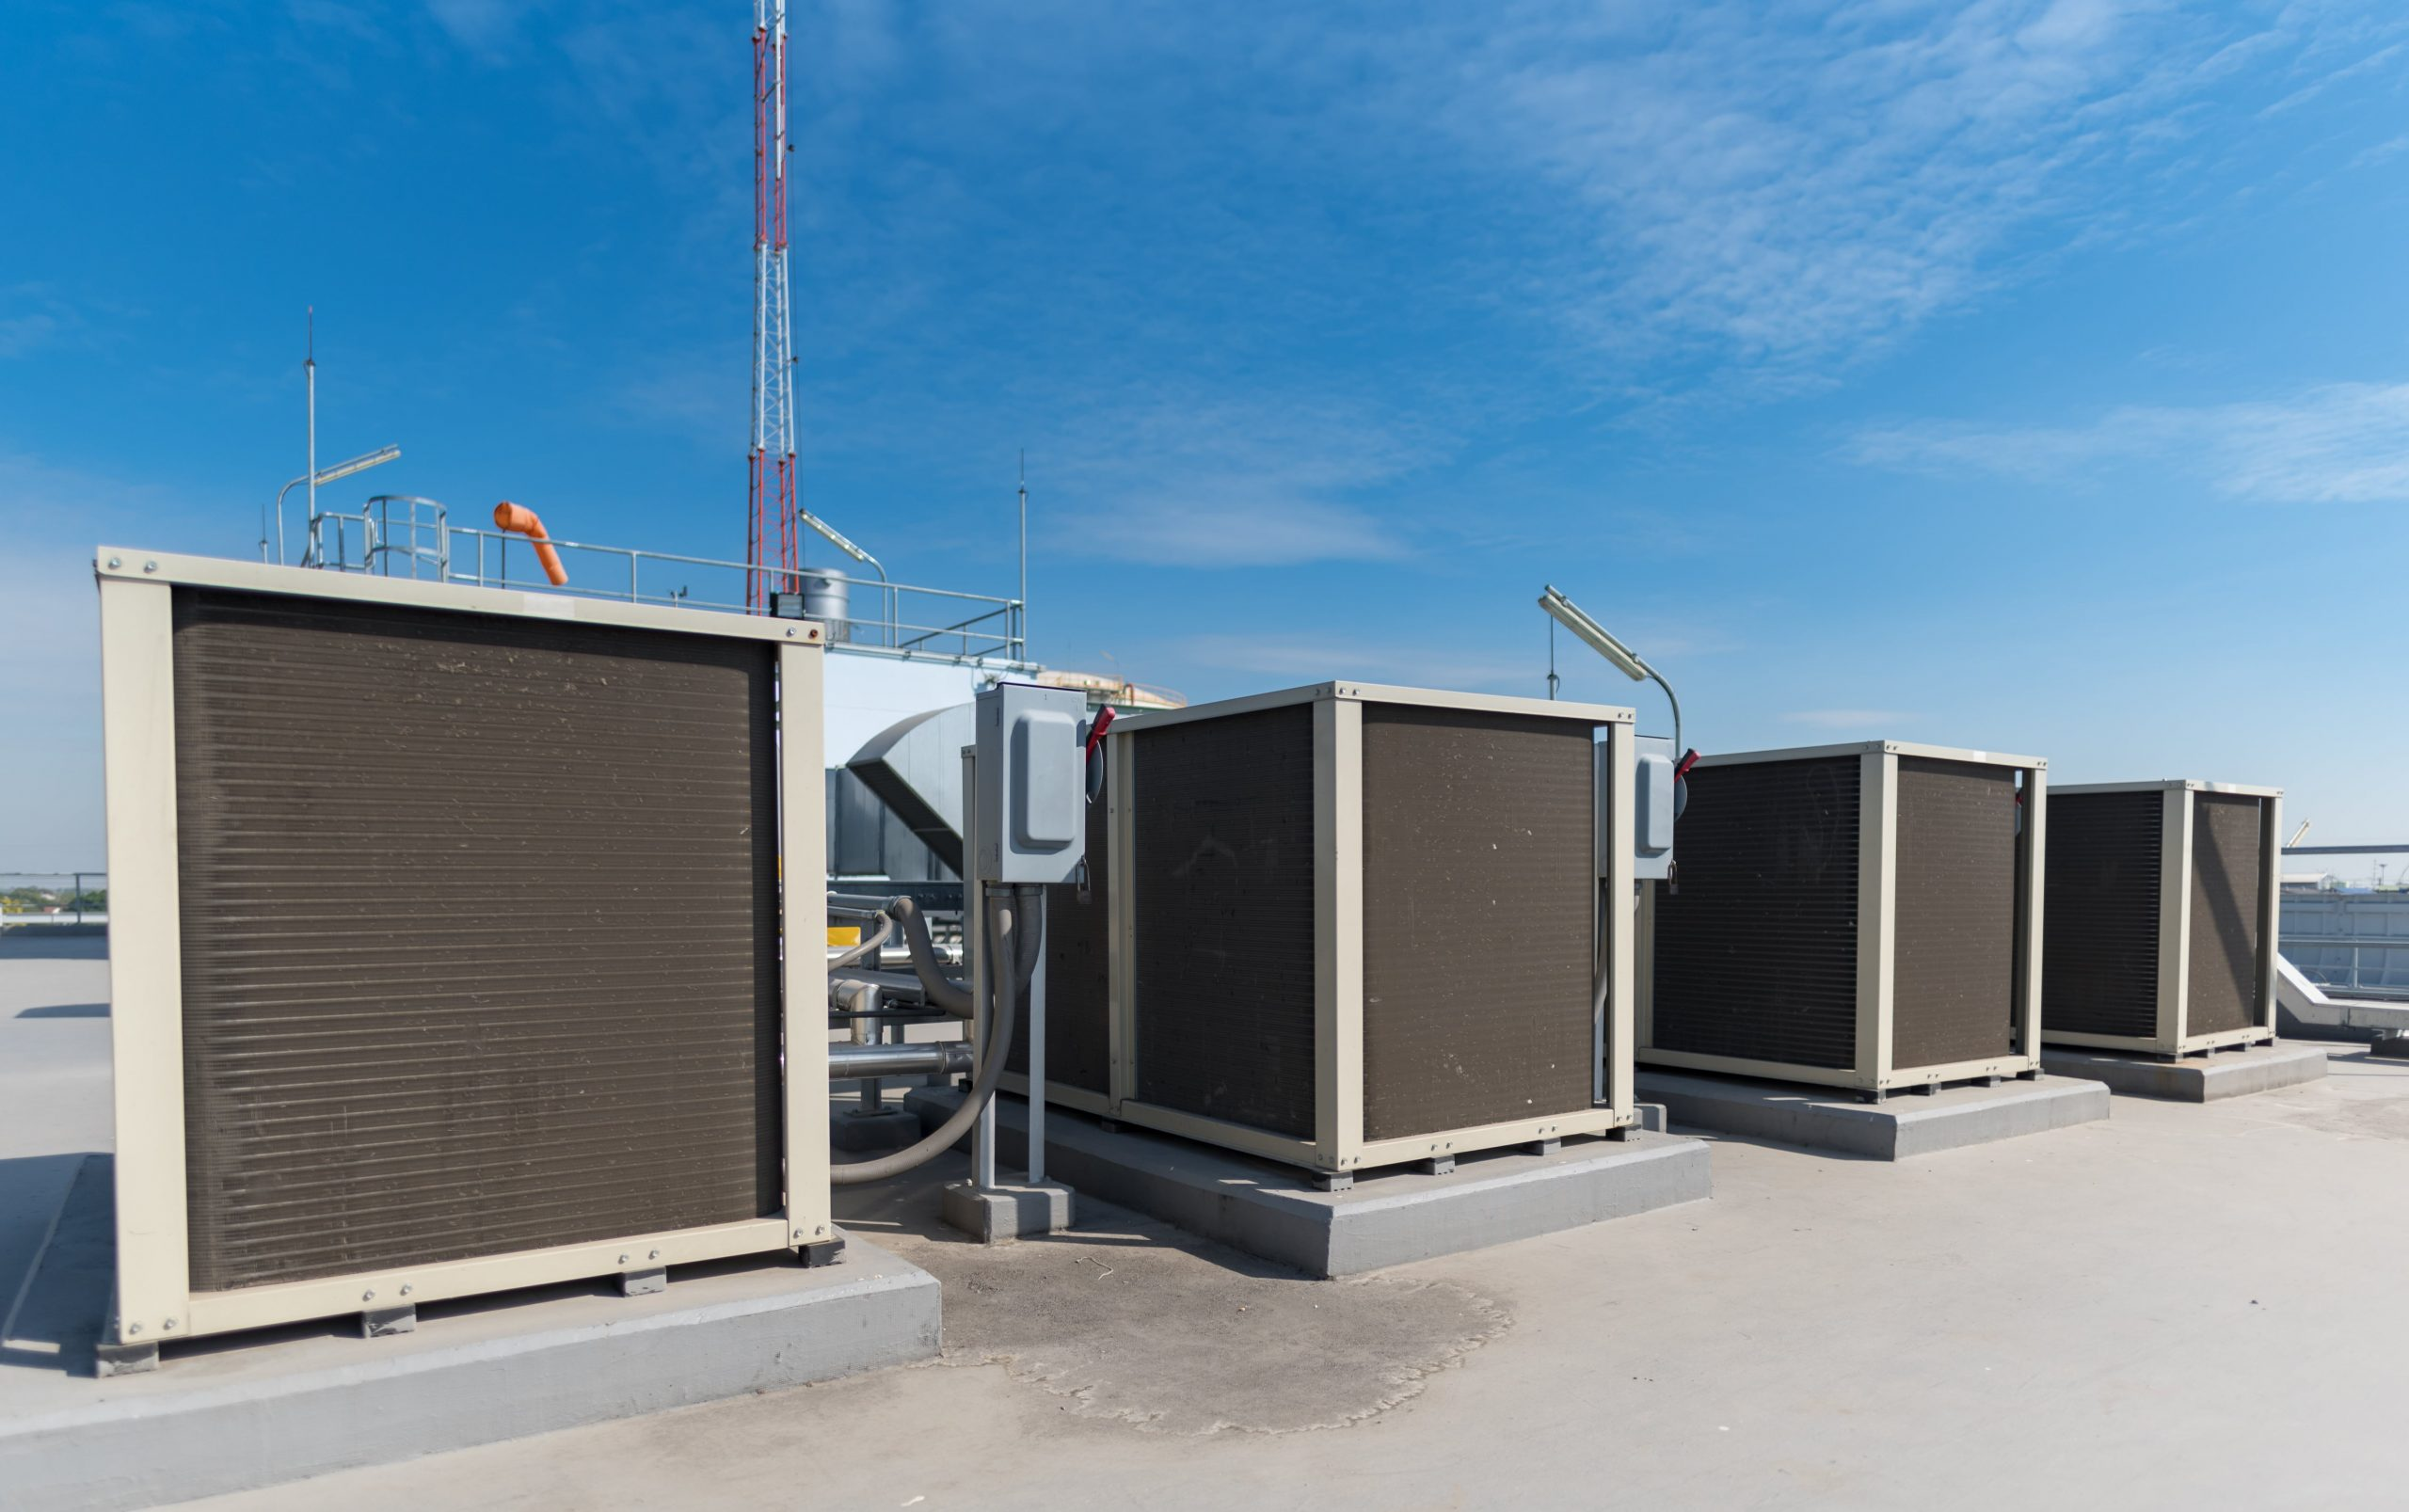 How does a rooftop HVAC unit work?